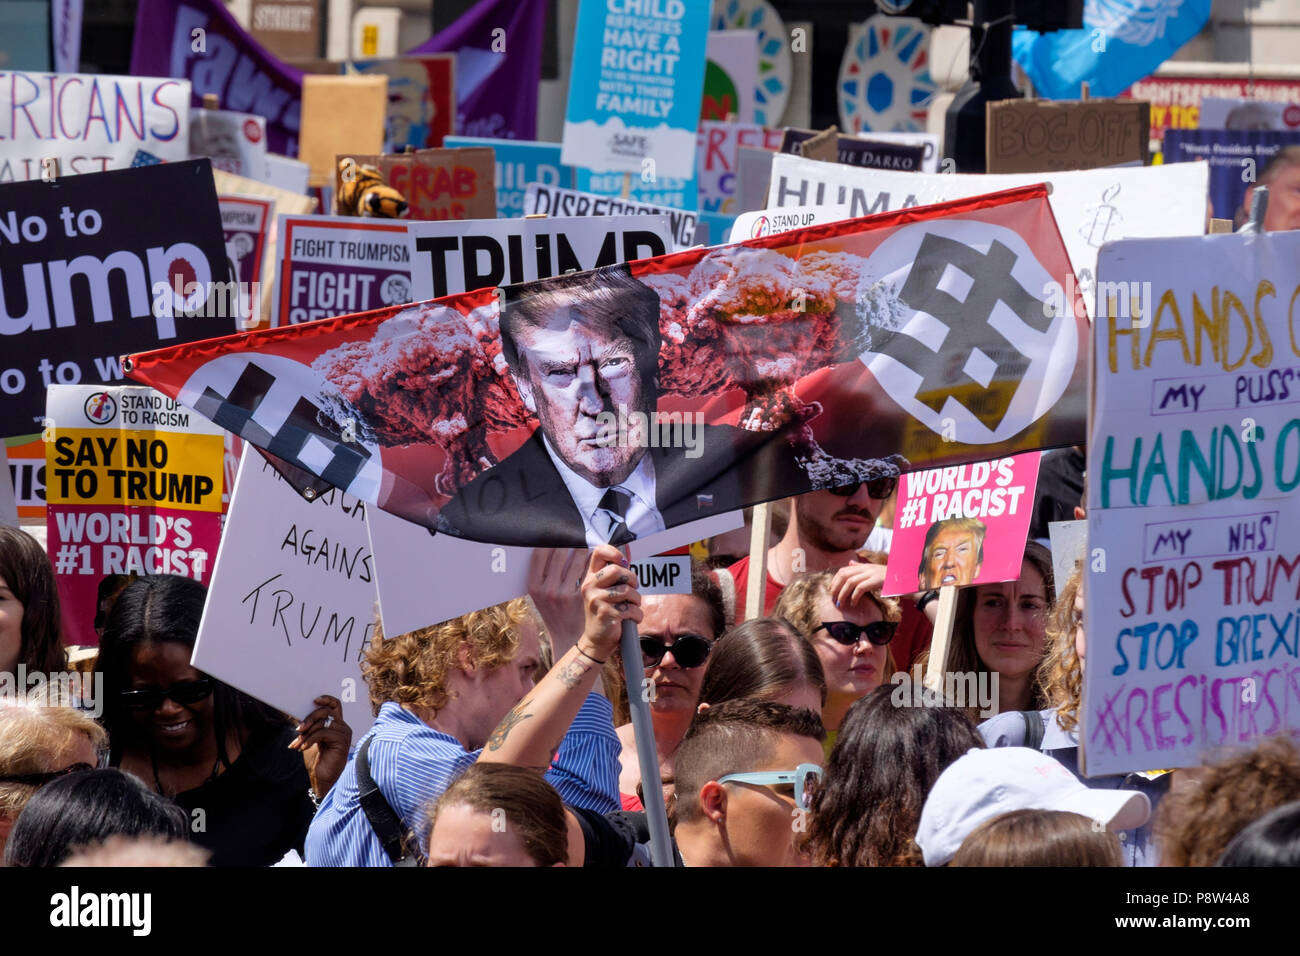 London, UK. 13th July 2018. Tens of thousands of people took to the streets of central London to protest against US President Donald Trump's visit to the UK. Credit: mark phillips/Alamy Live News Stock Photo